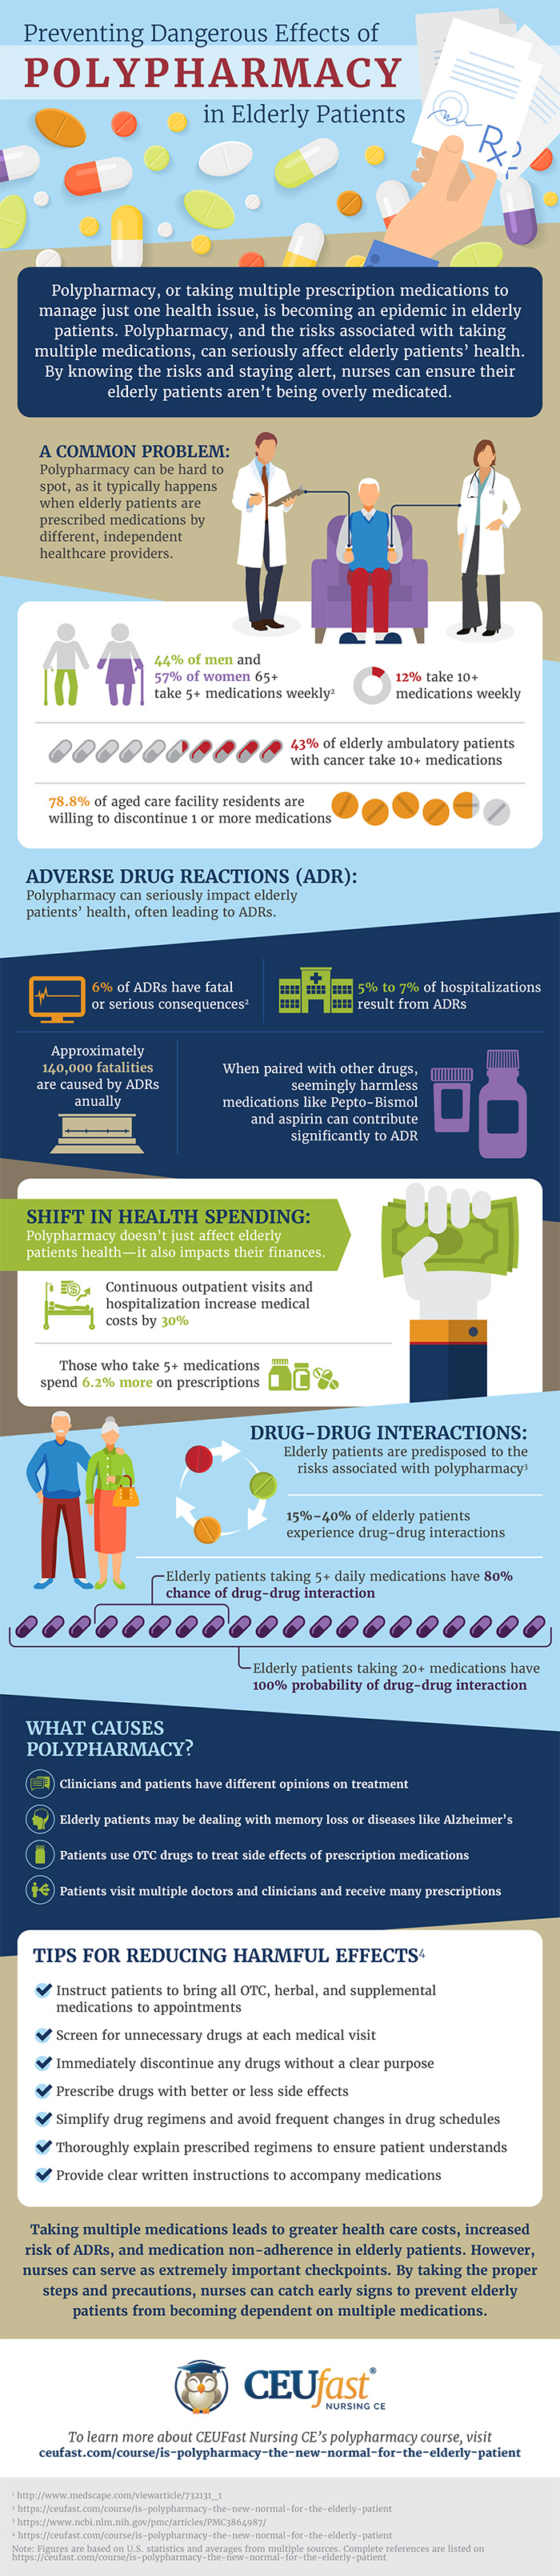 Elderly Patients' Guide To Dealing With The Effects Of Polypharmacy - Infographic